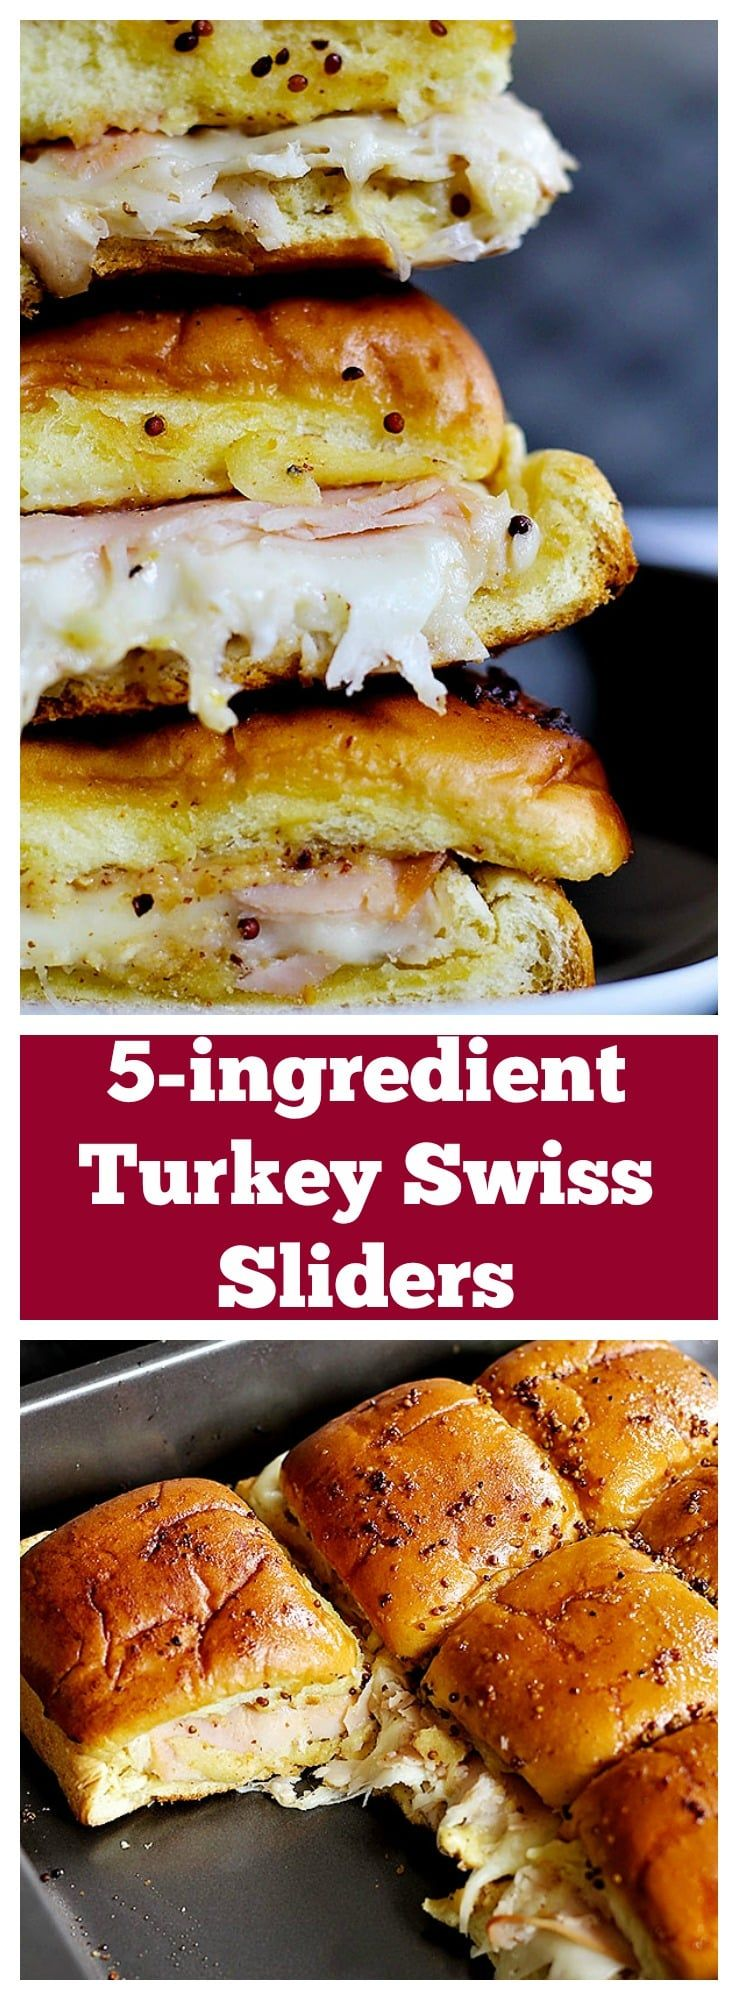 5-ingredient Turkey Sliders • Unicorns in the kitchen